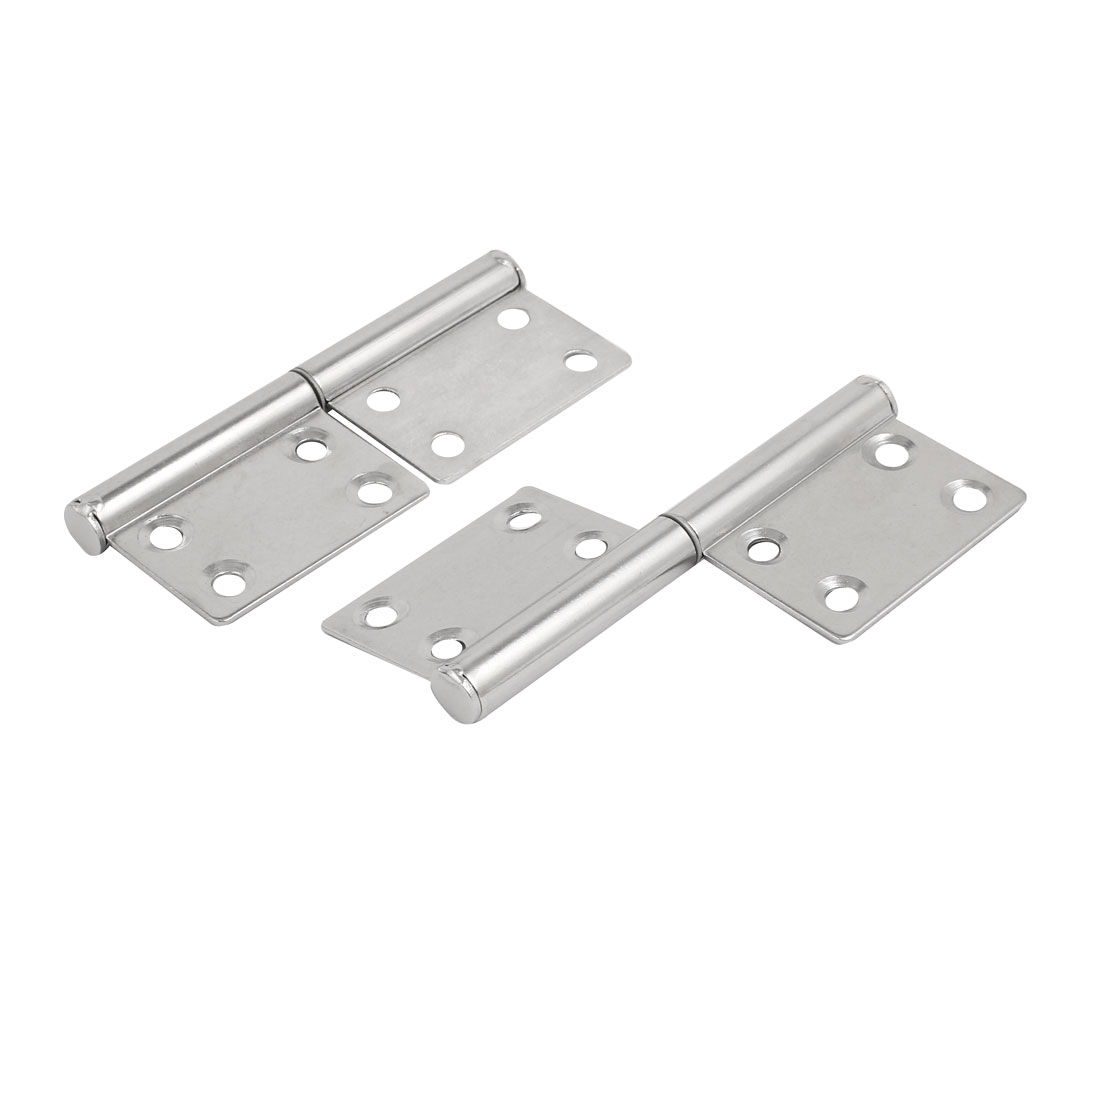 100mm Length Stainless Steel Two Leaves Detachable Flag Hinges Silver Tone 2pcs